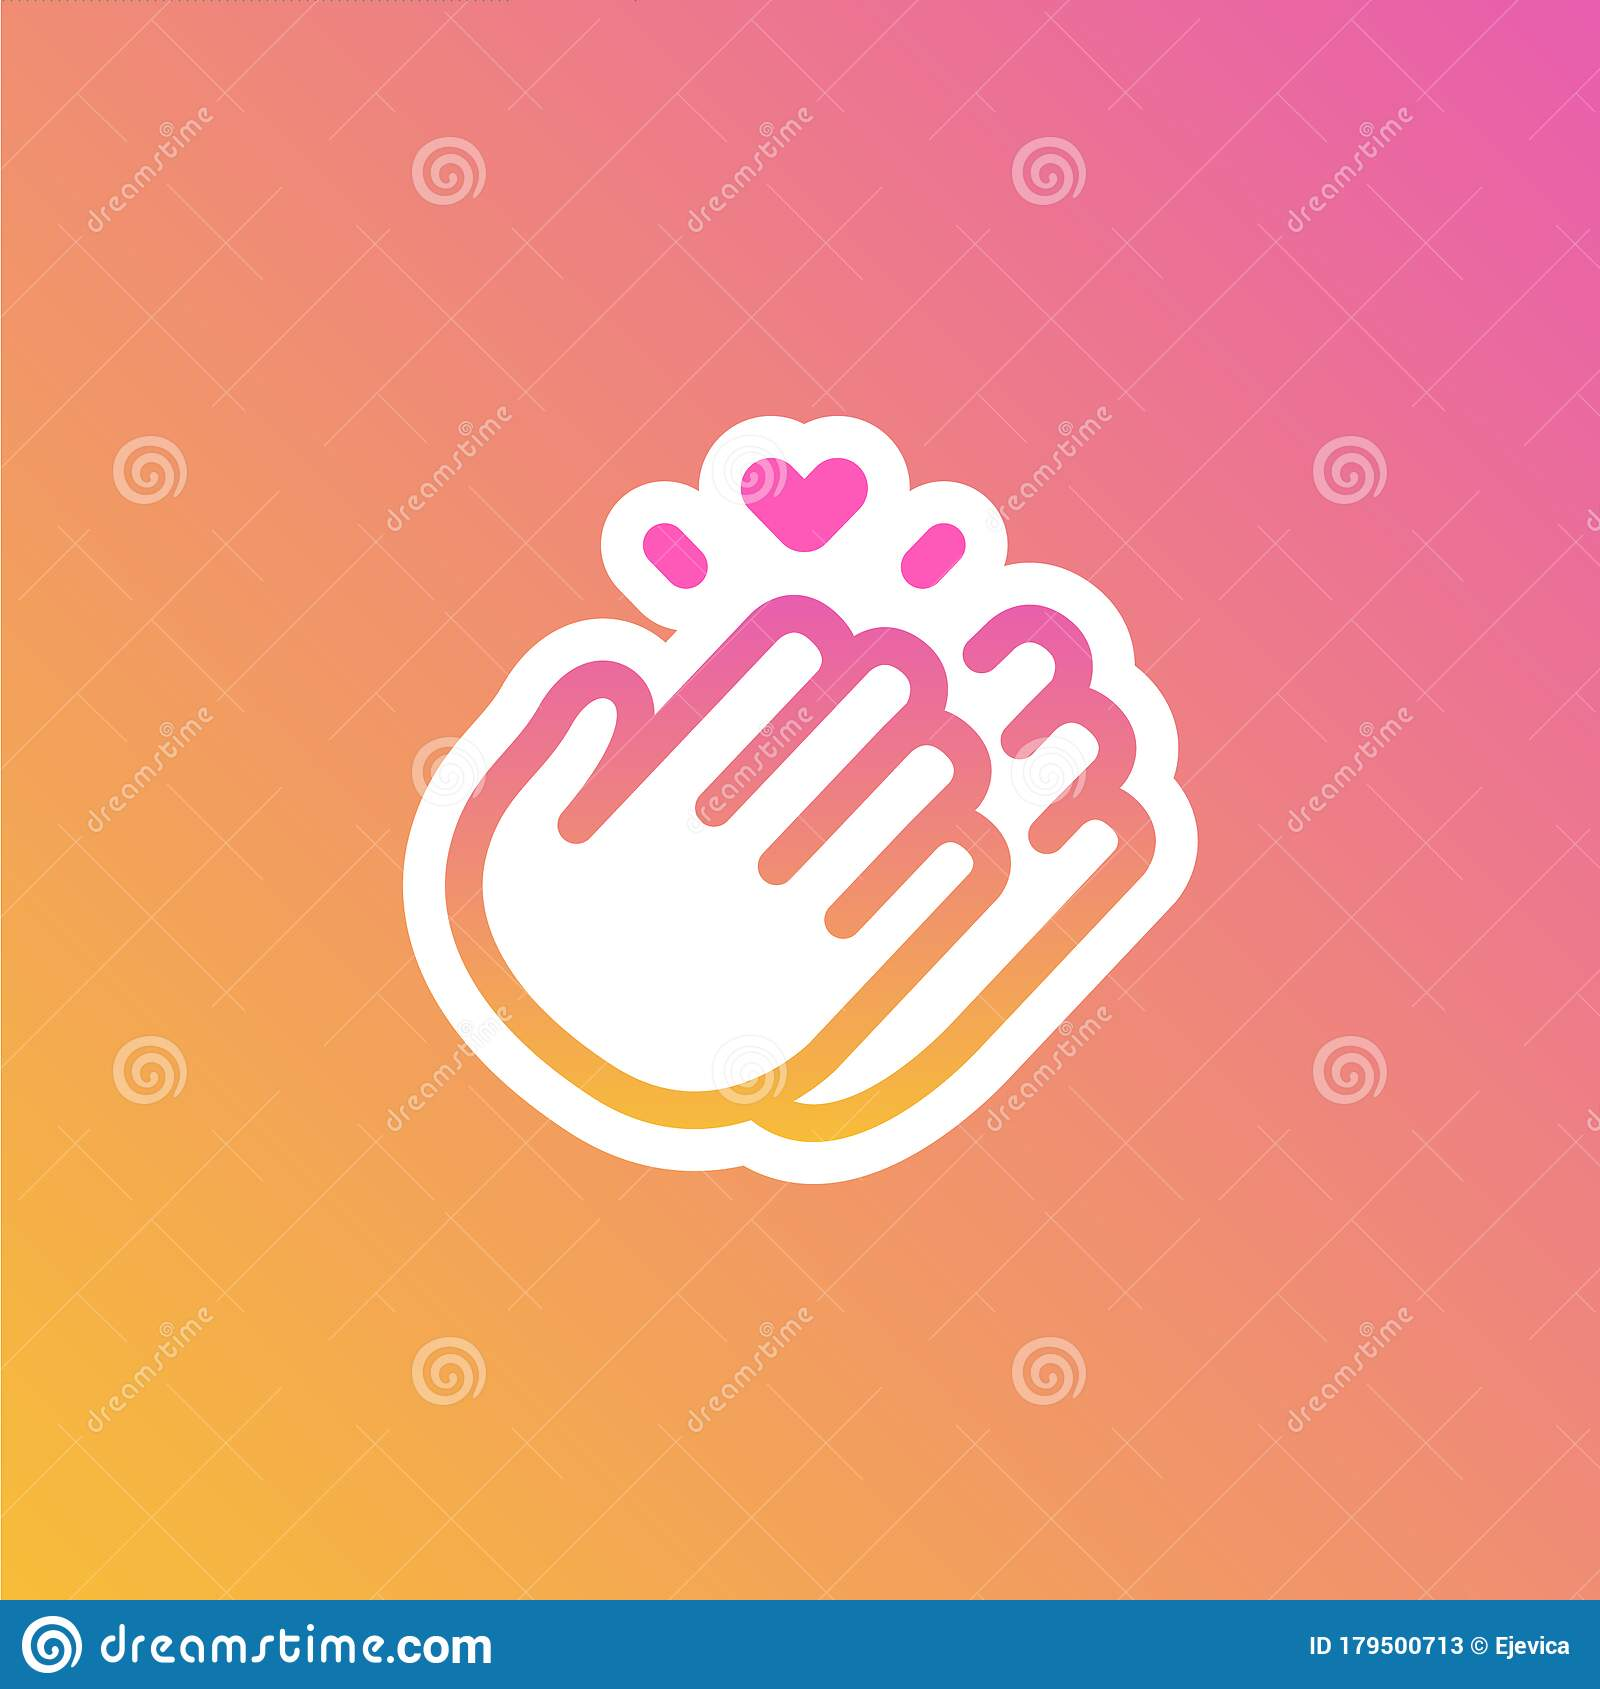 instagram sticker thank you hour icon clapping hands stock vector illustration of sign template 179500713 dreamstime com